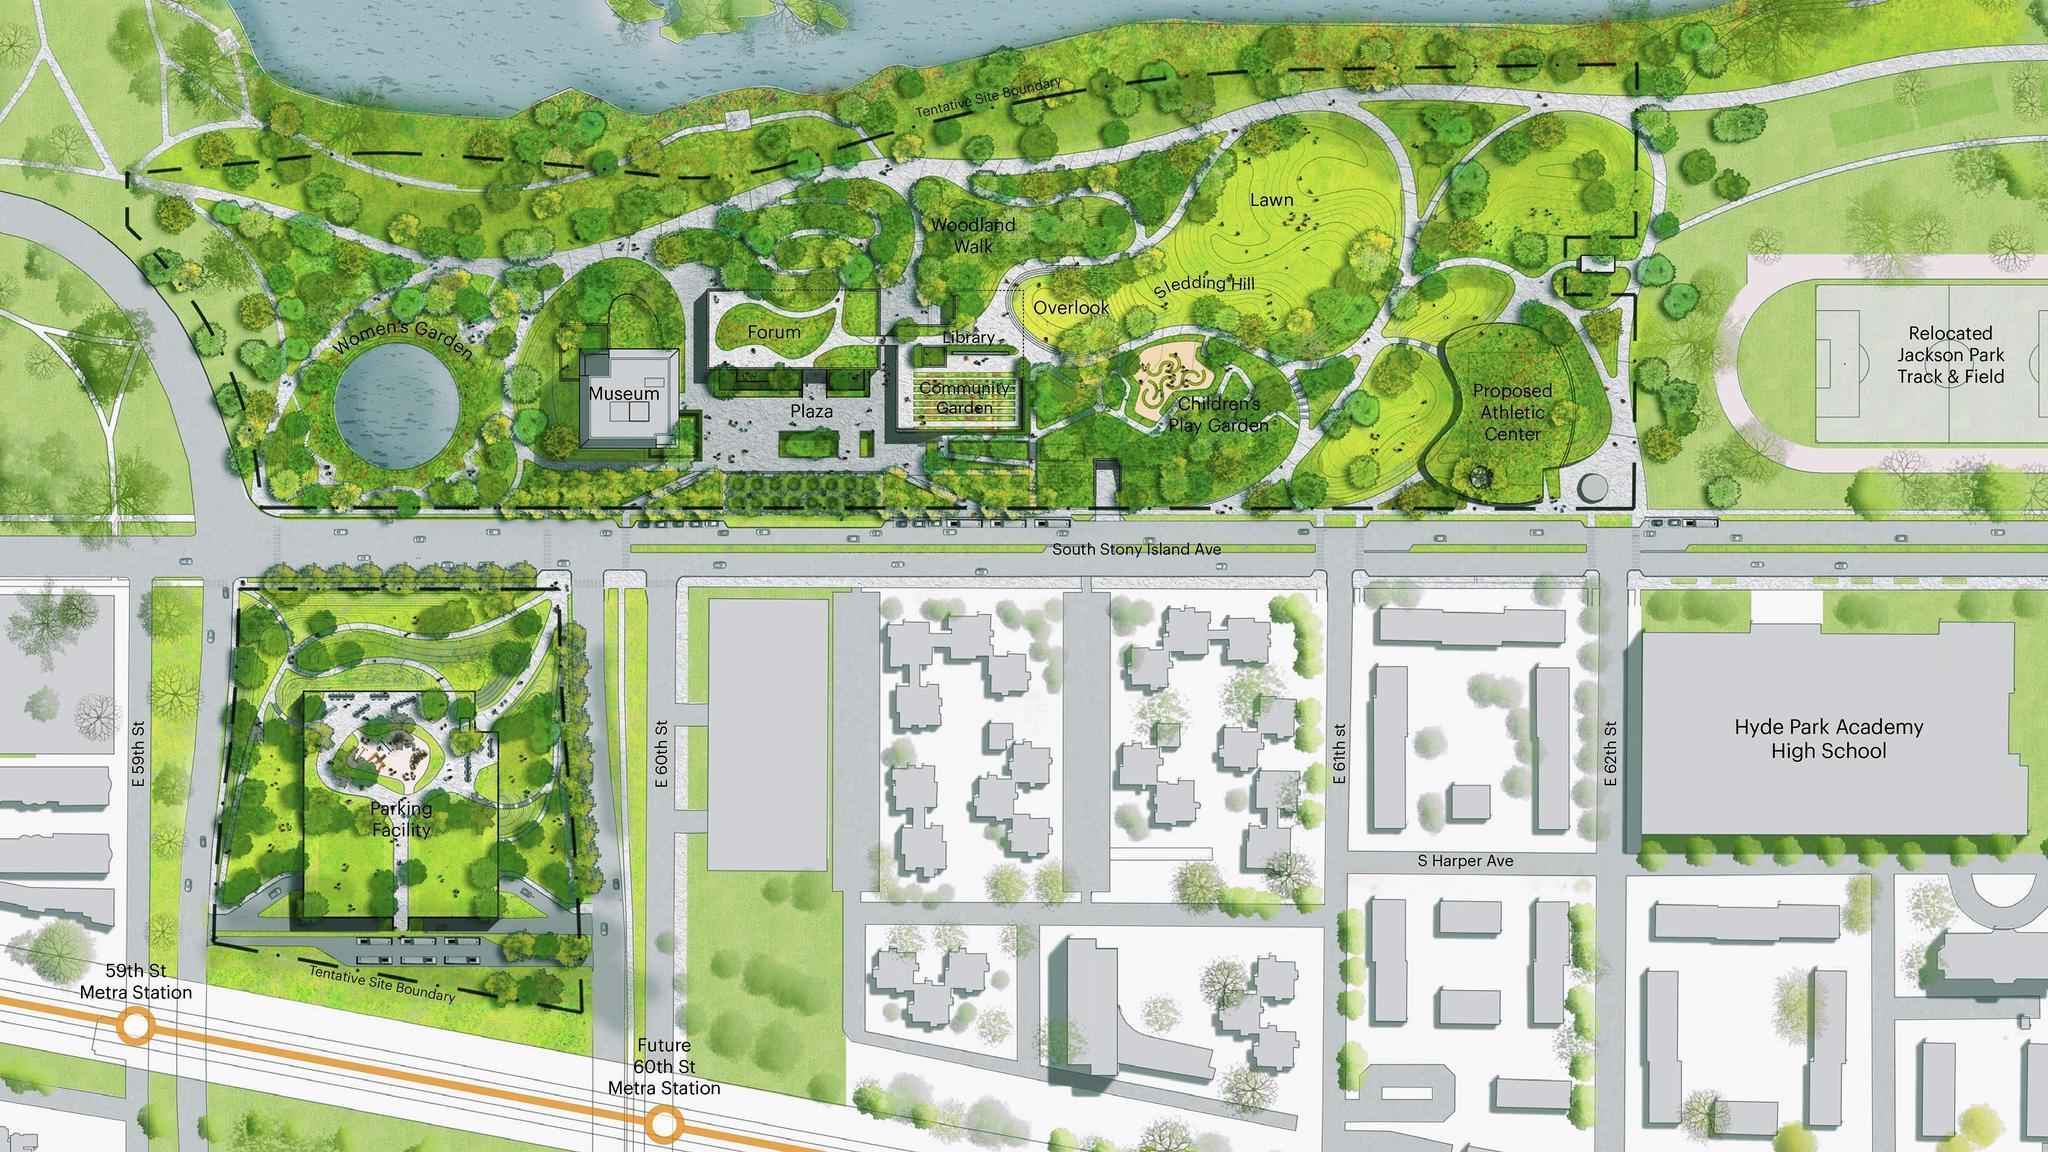 New lane on Lake Shore Drive and parking garage proposed for Obama